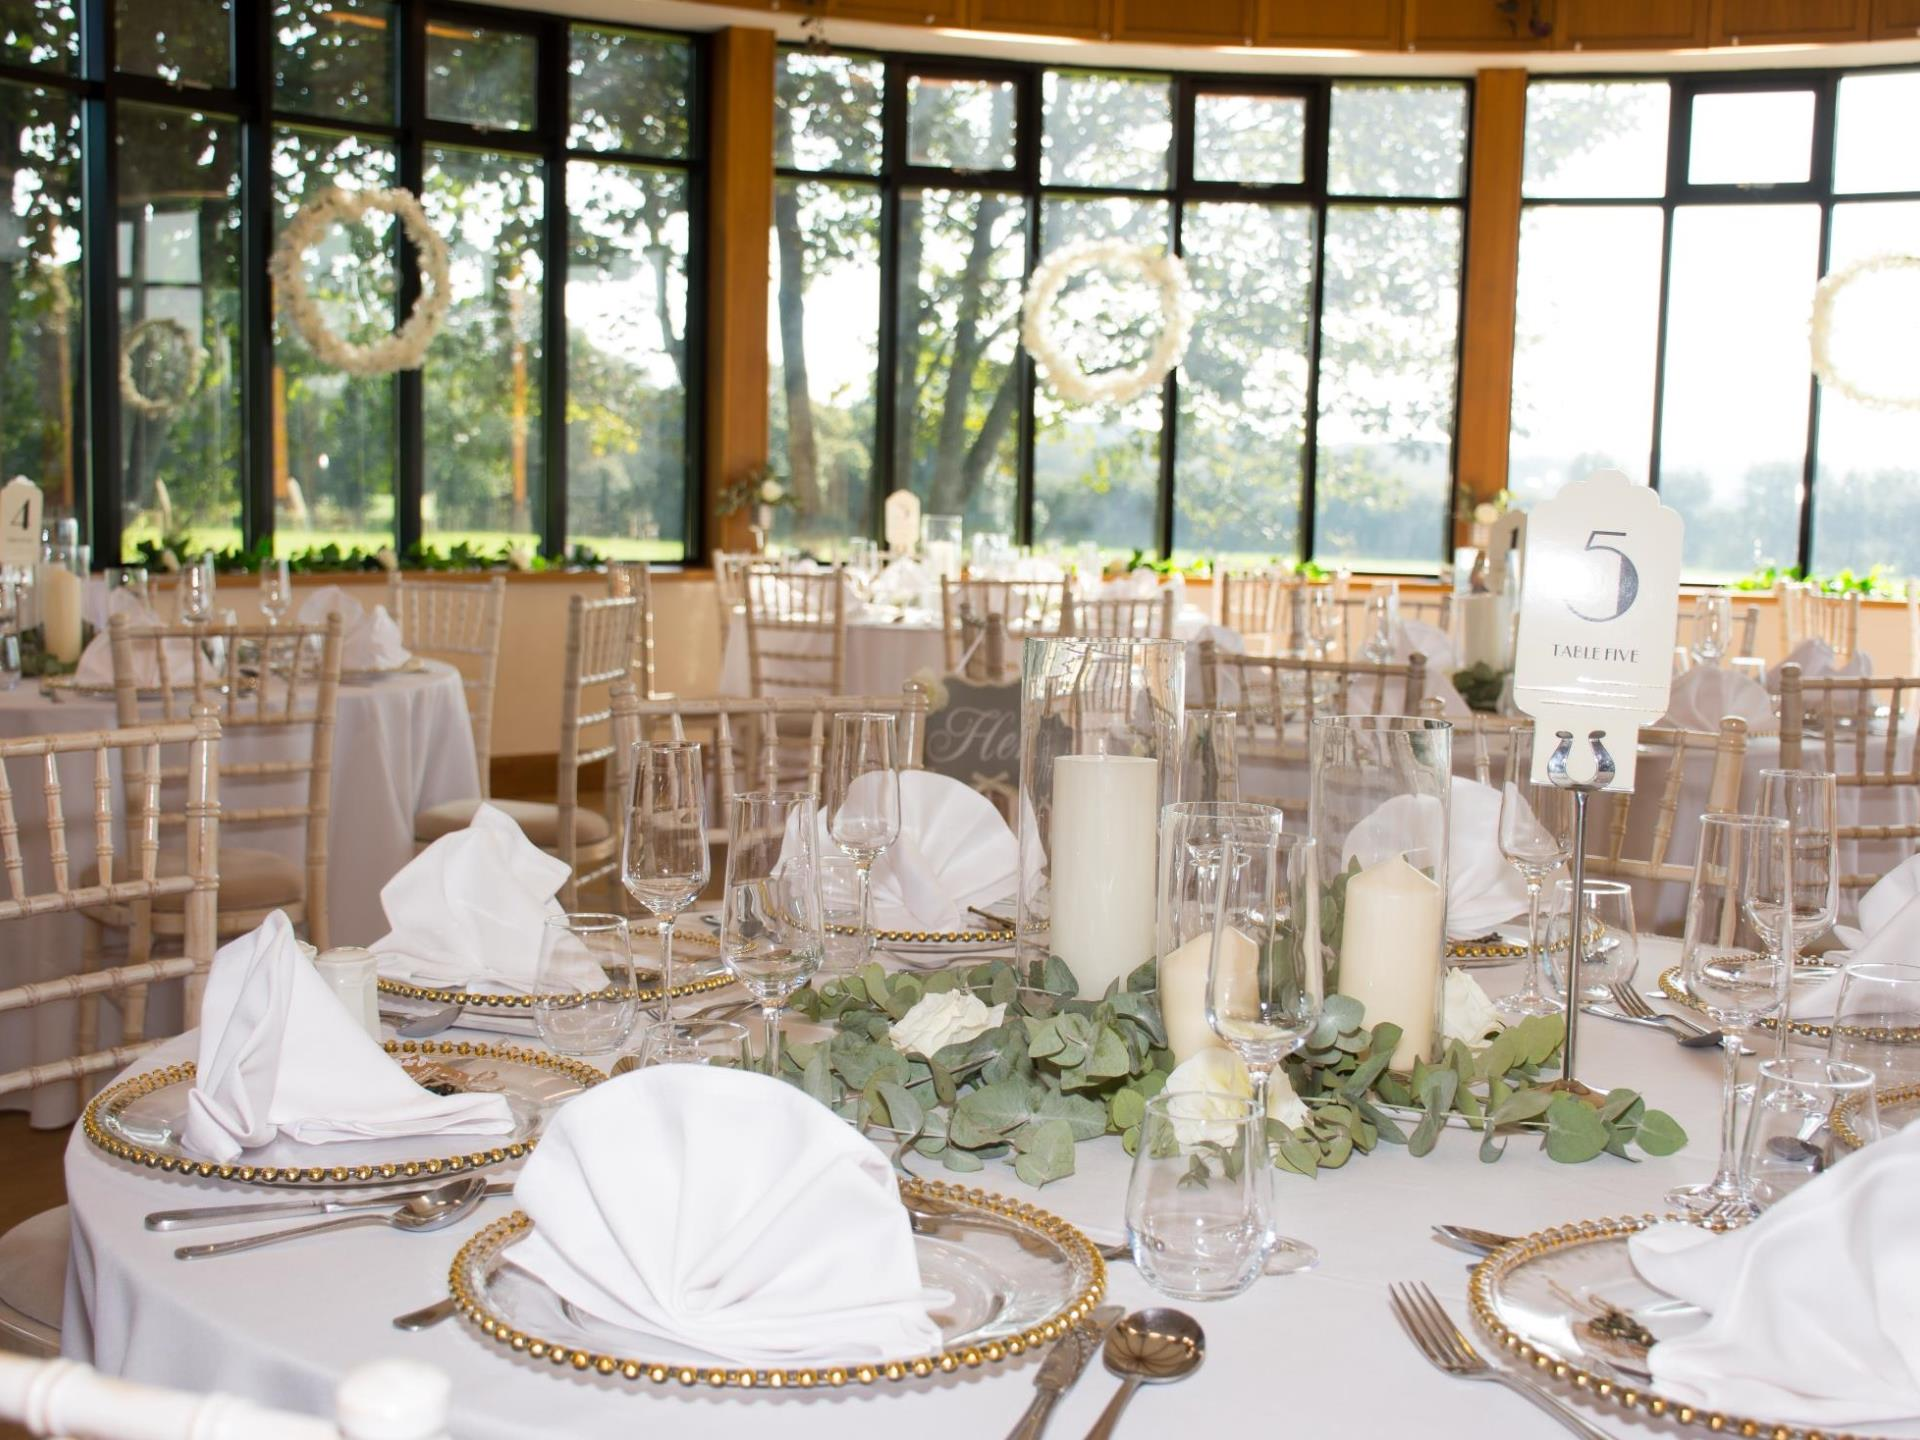 Conservatory Restaurant Wedding at Llancaiach Fawr